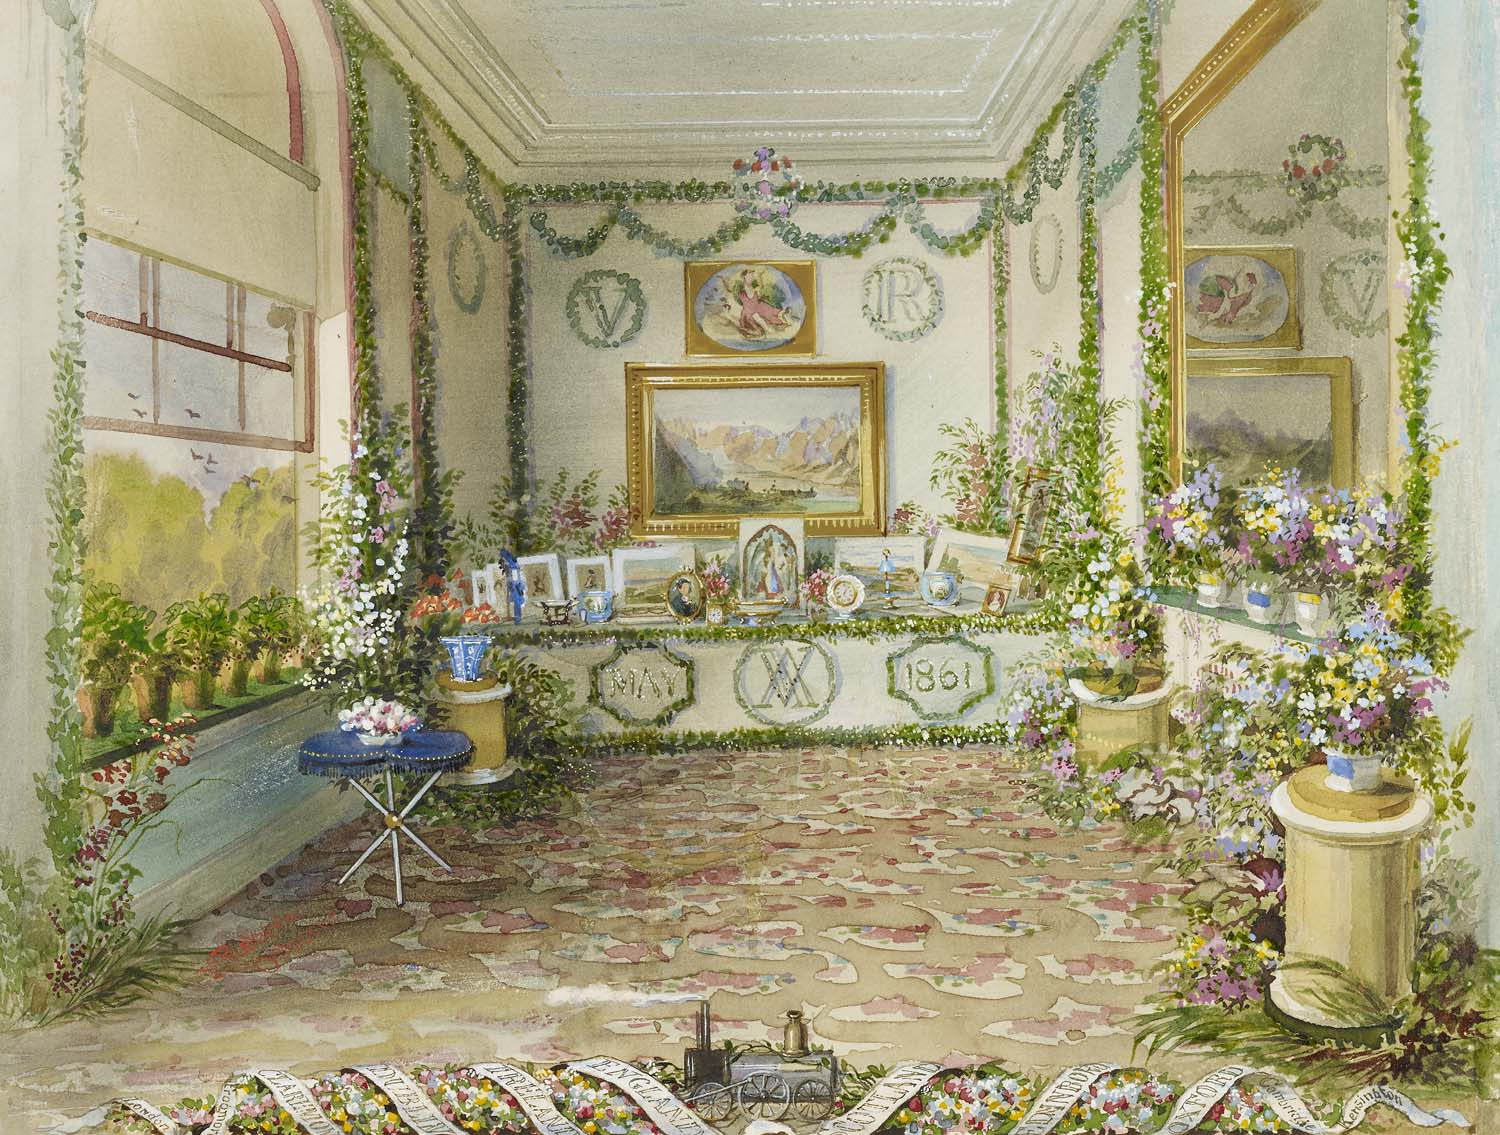 an interiro of a room with decorated table festooned with garlands and flowers